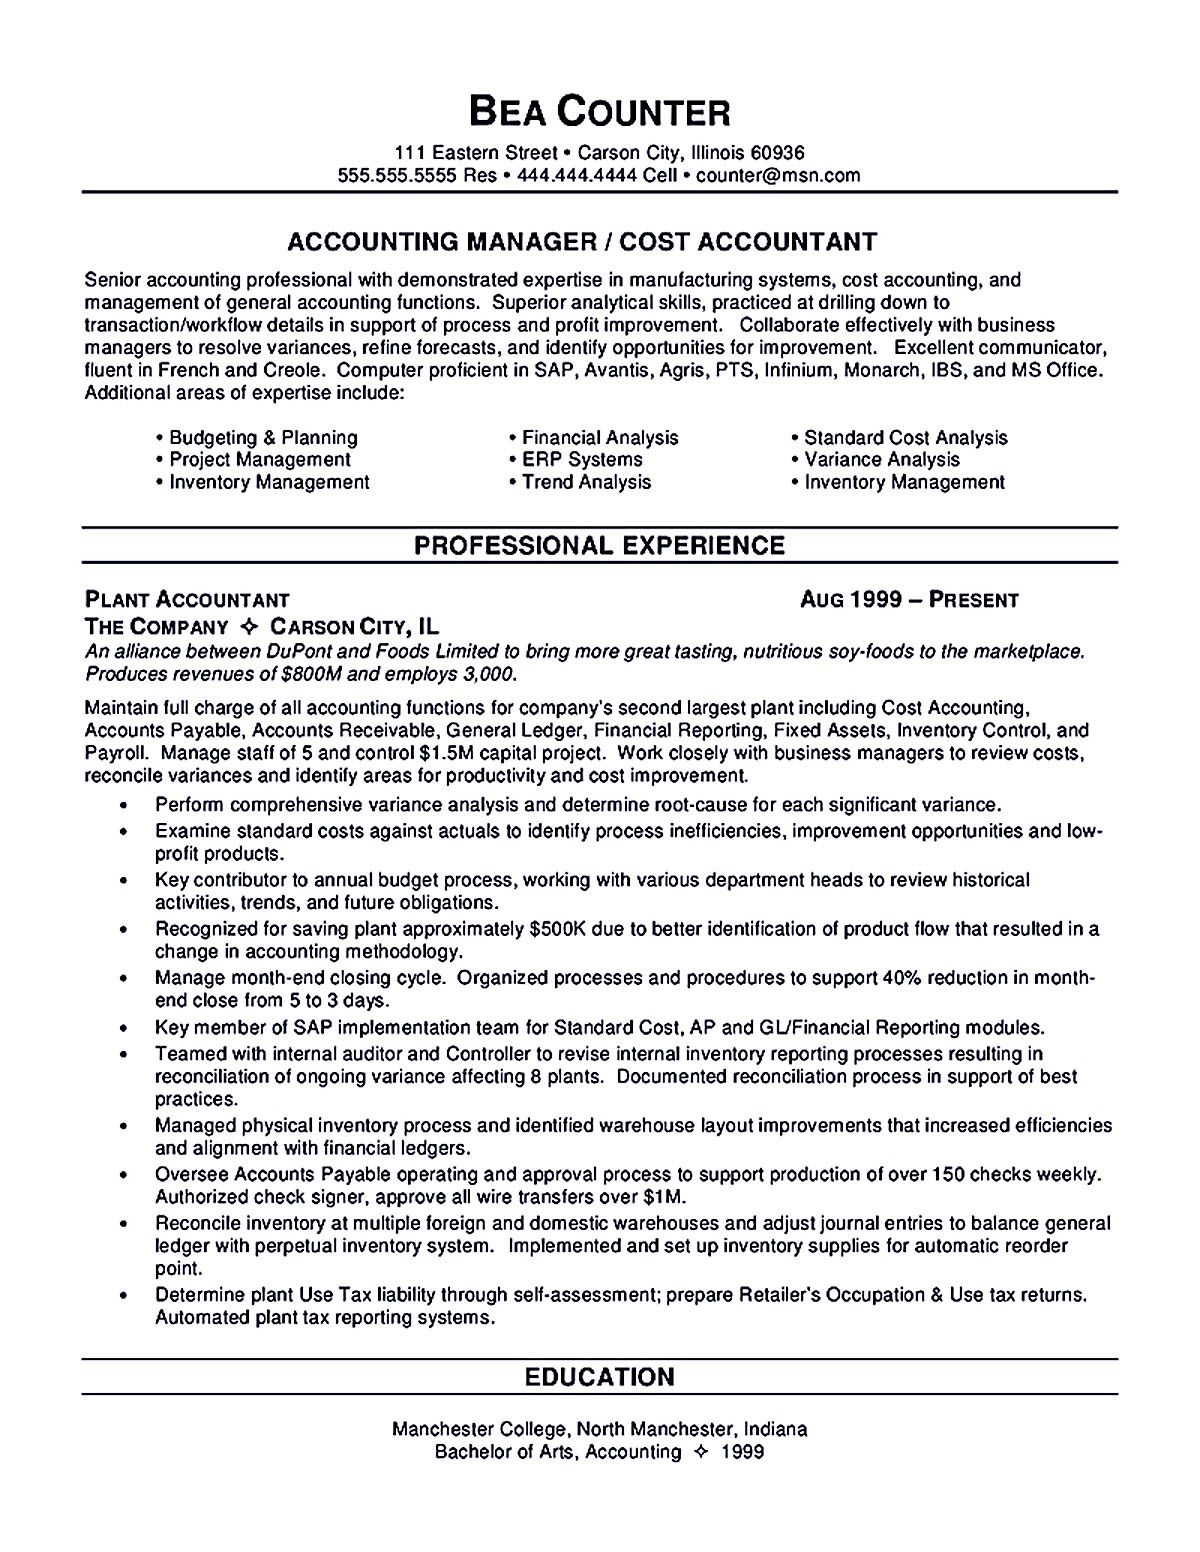 Account Payable Resume Accounts Payable Resume Template Accountant Resume Template Here